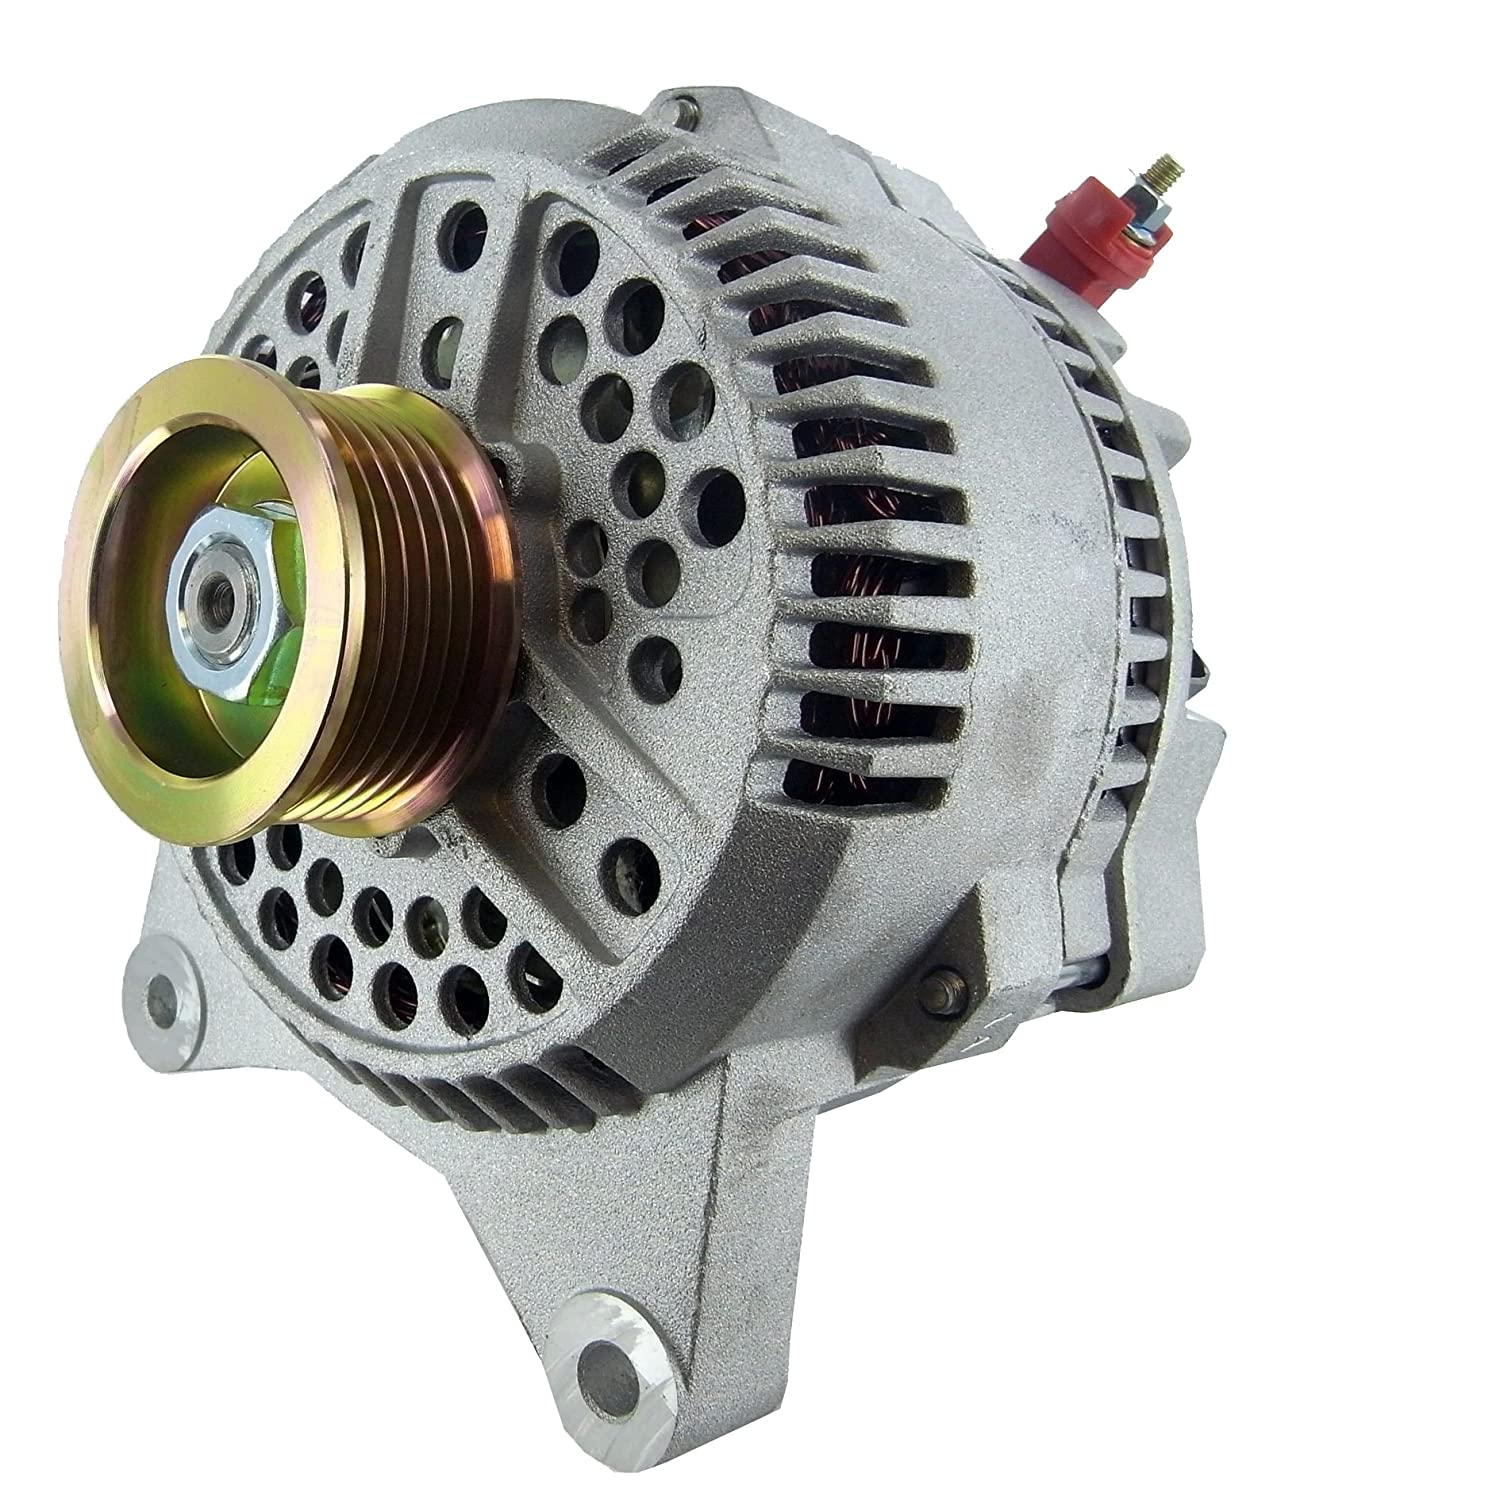 250 Amp High Output Alternator For Ford Lincoln 1972 Mustang Wiring Mercury Gl 351 485 Automotive